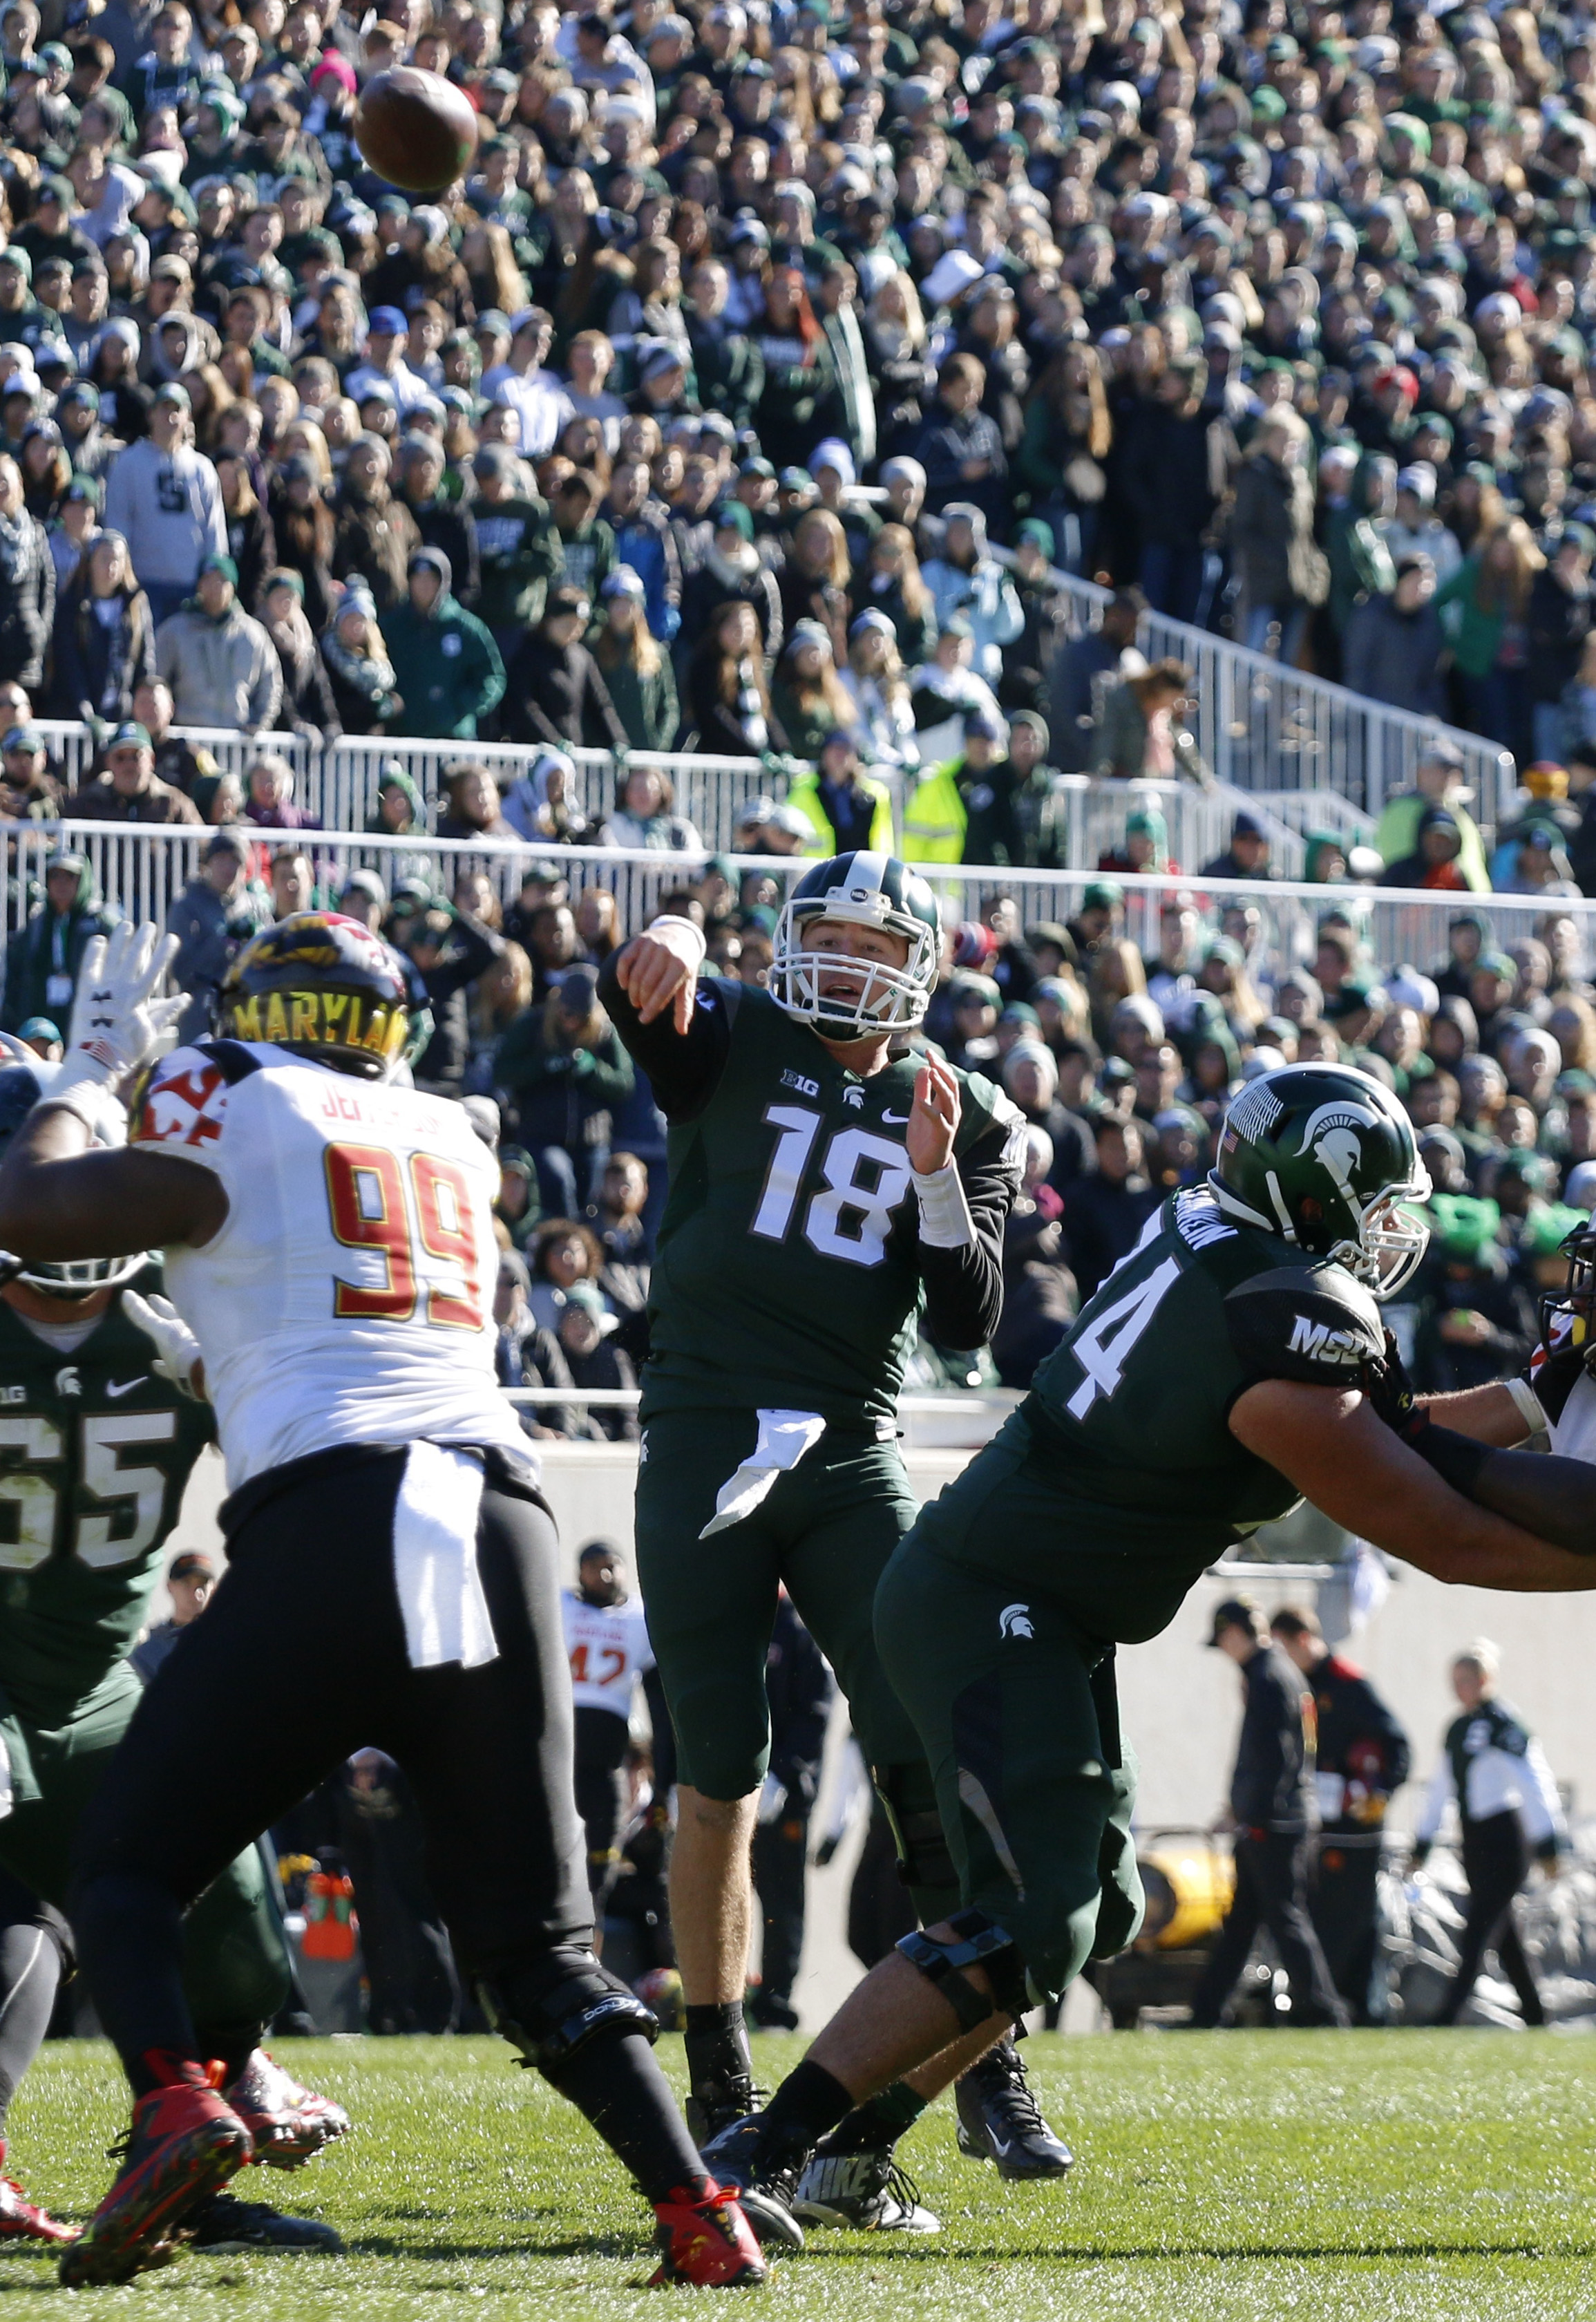 Michigan State quarterback Connor Cook (18) throws a pass during the second quarter of an NCAA college football game against Maryland, Saturday, Nov. 14, 2015, in East Lansing, Mich. (AP Photo/Al Goldis)